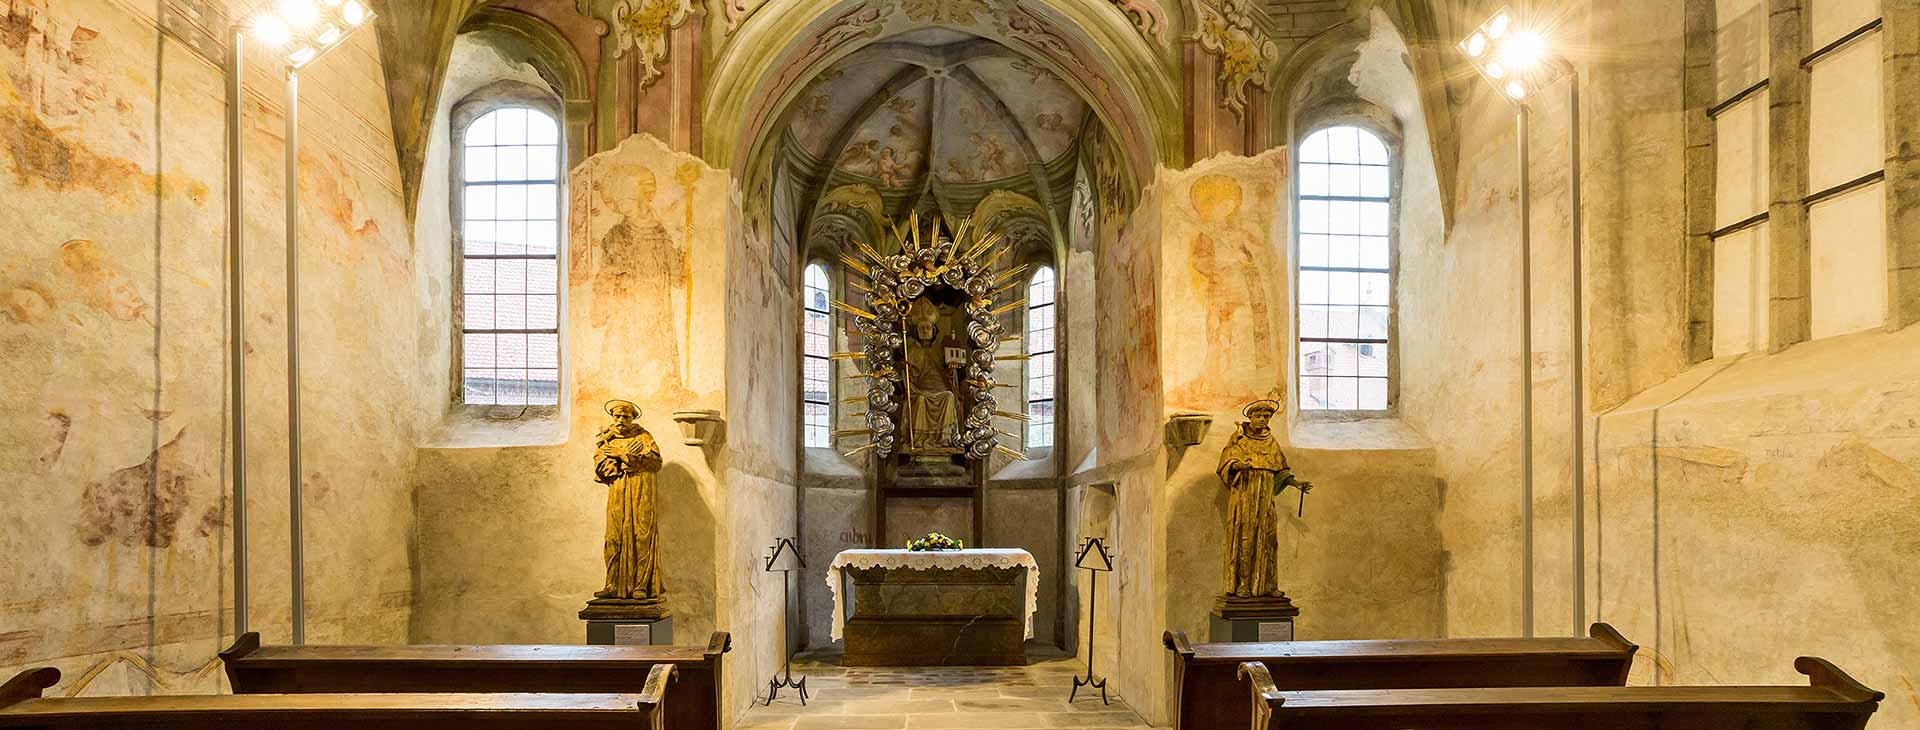 Life and art in Krumlov monasteries